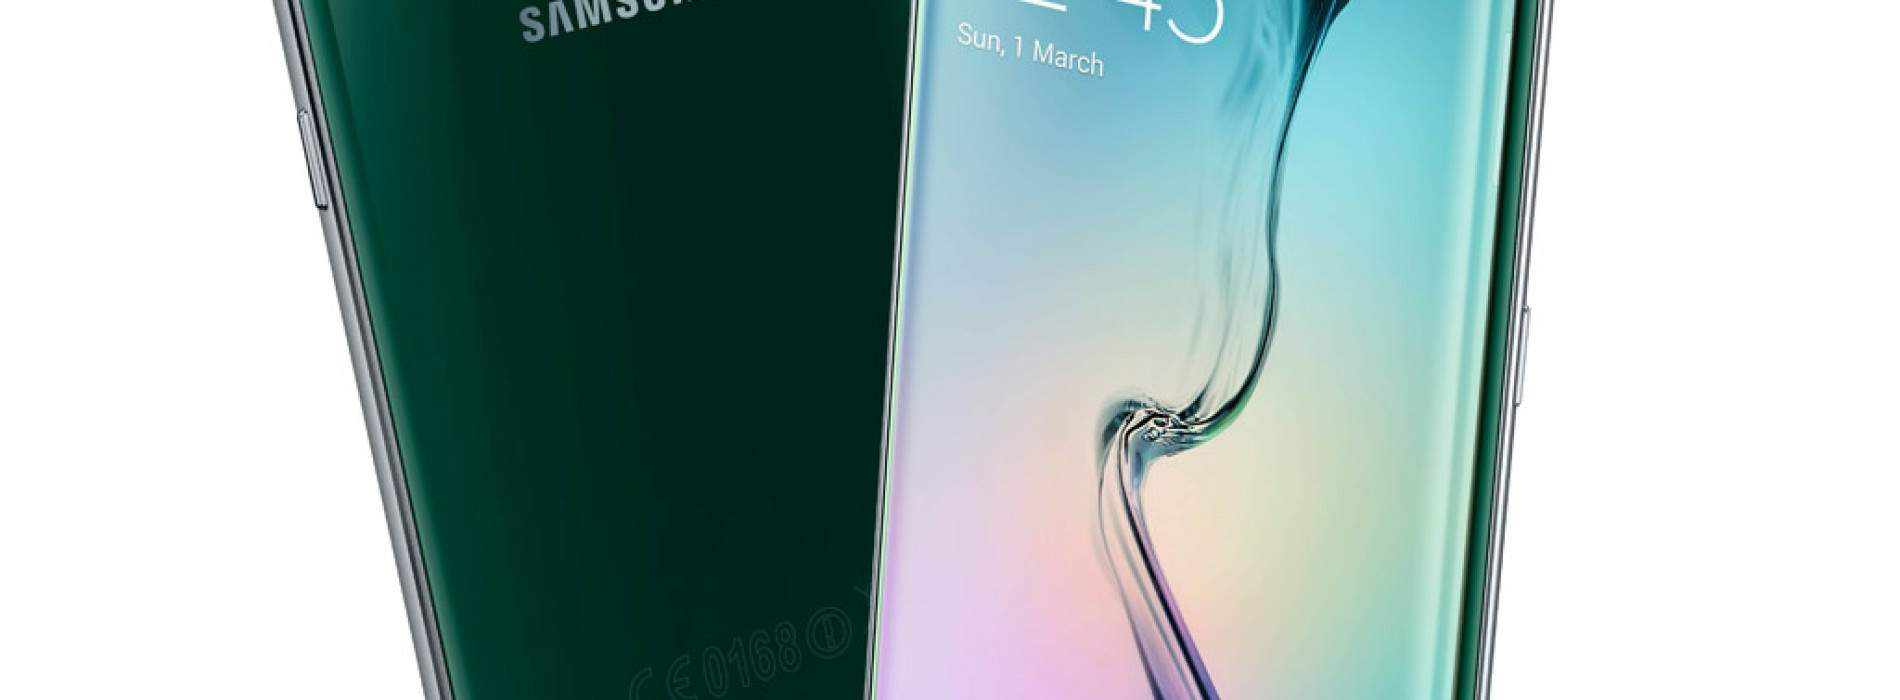 Las 10 claves del Samsung Galaxy S6 edge